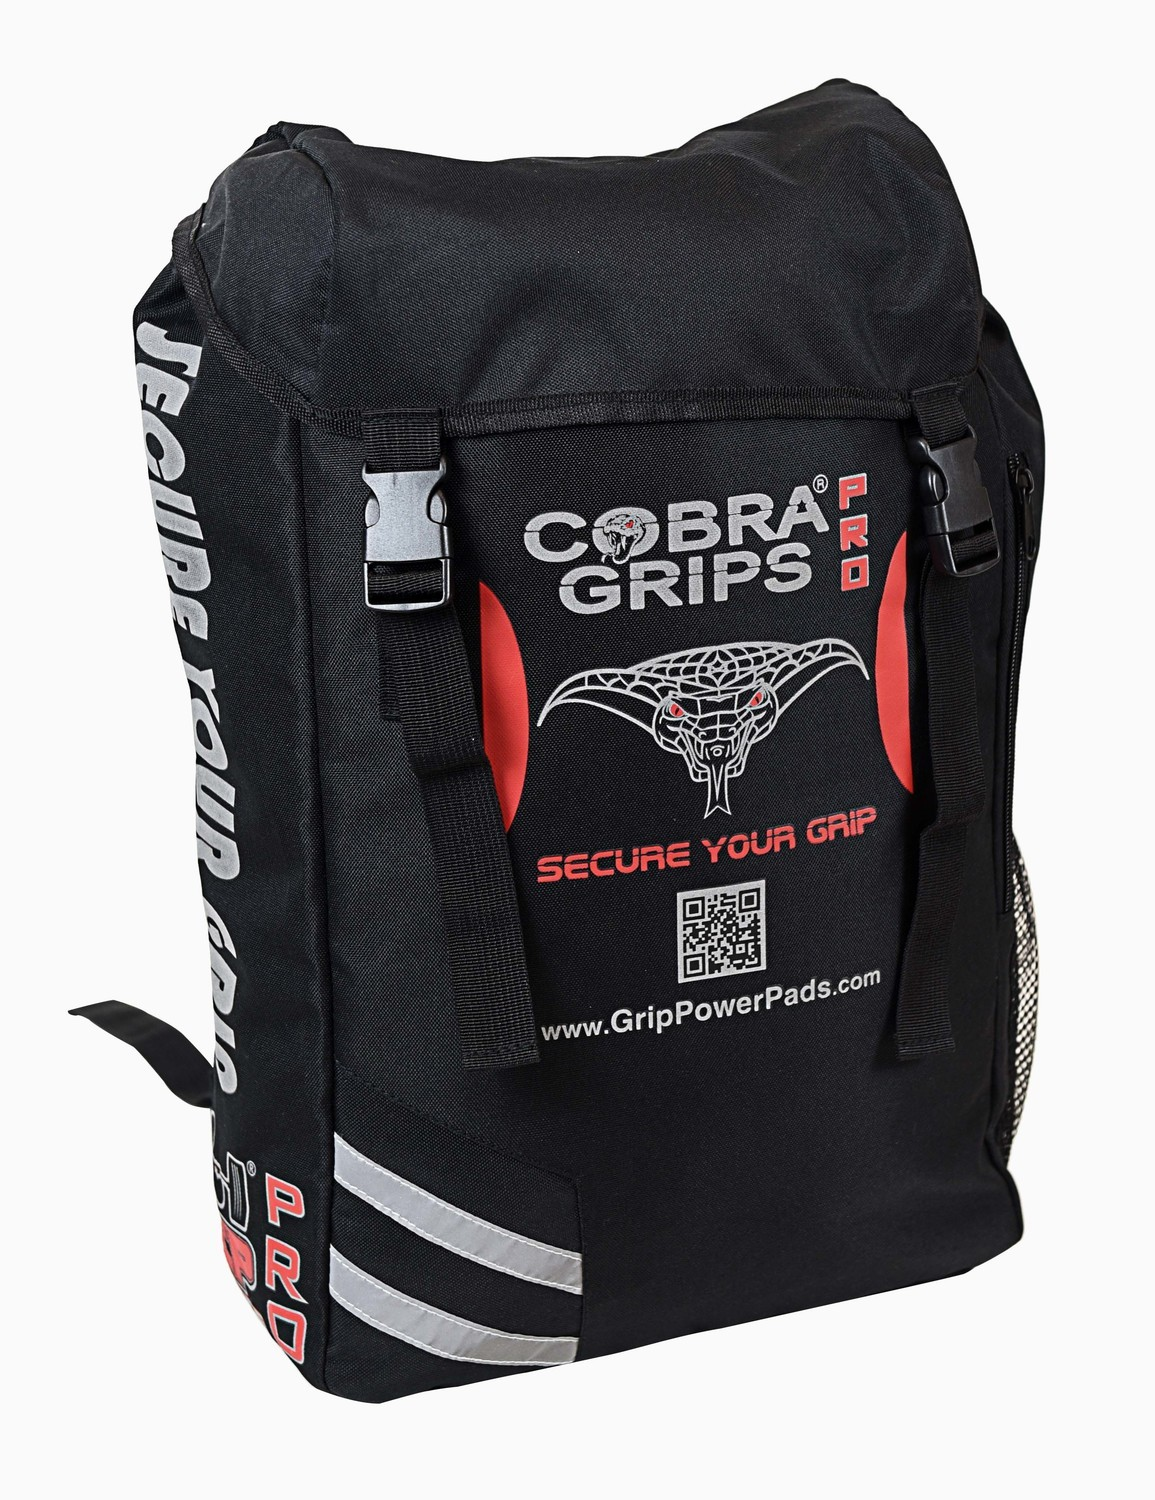 Cobra Grips Sport Sackpack Gym Bag